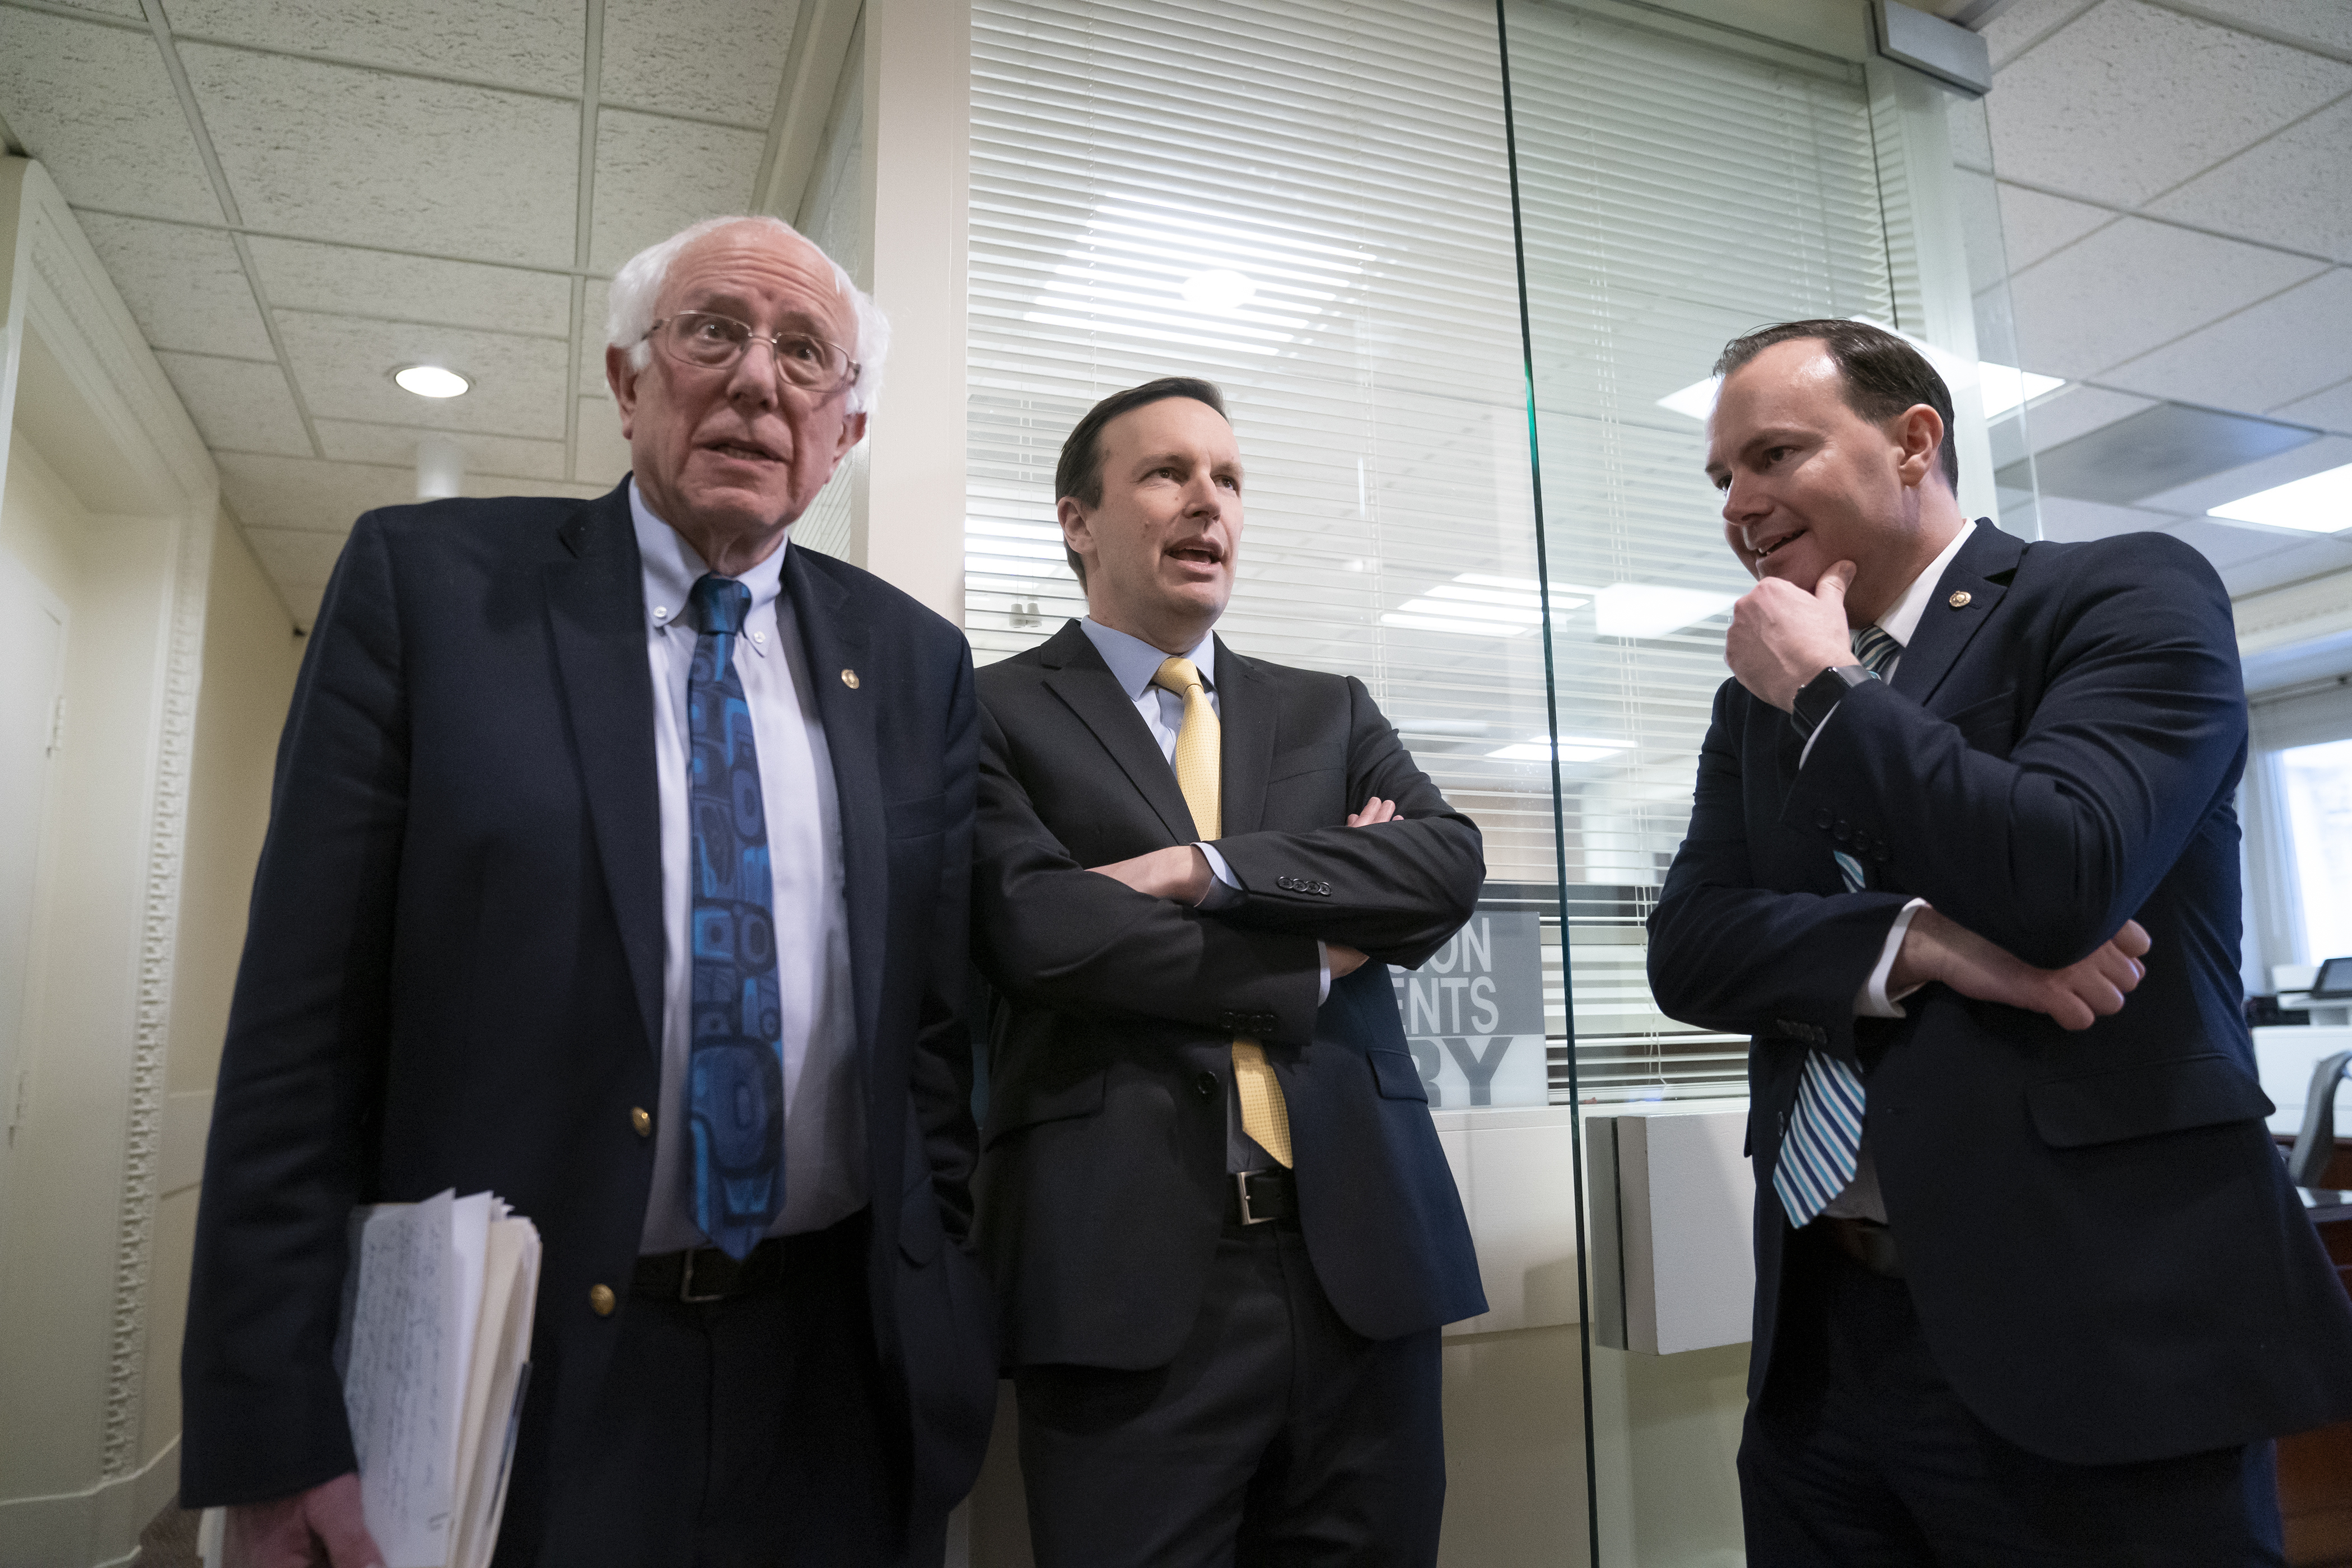 From left, Sen. Bernie Sanders, I-Vt., Sen. Chris Murphy, D-Conn., and Sen. Mike Lee, R-Utah, meet before holding a news conference at the Capitol in Washington, Wednesday, March 13, 2019. The three senators, along with Sen Chris Coons, D-Del., and Sen. Rand Paul, R-Ky., have introduced legislation that would amend the Arms Export Control Act to prohibit the export of certain weaponized unmanned aircraft systems.